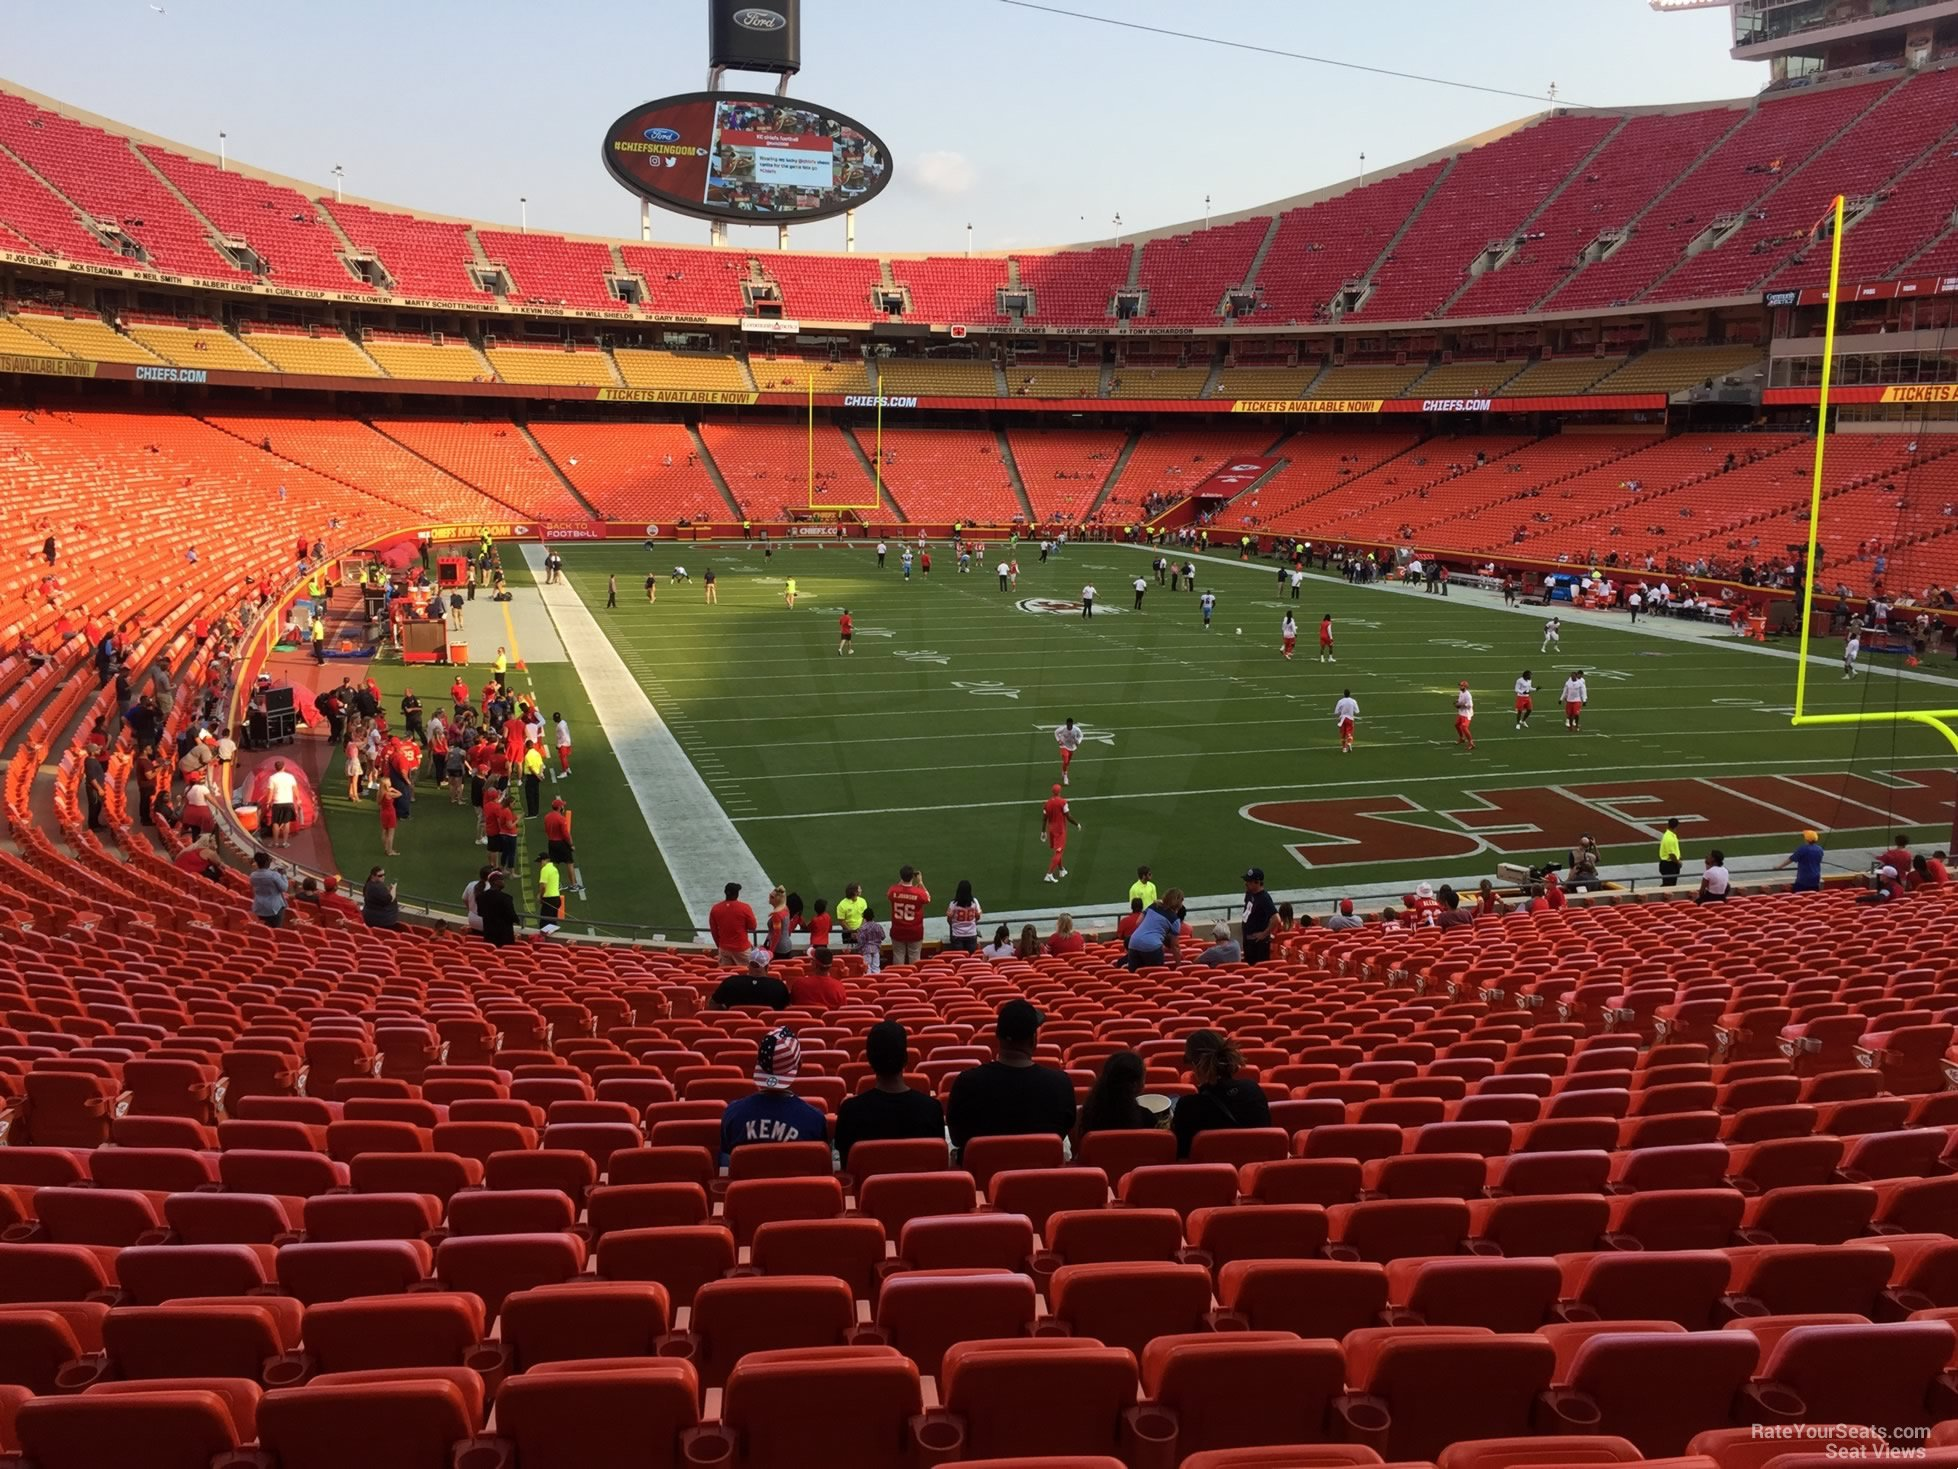 Seat View for Arrowhead Stadium Section 130, Row 30